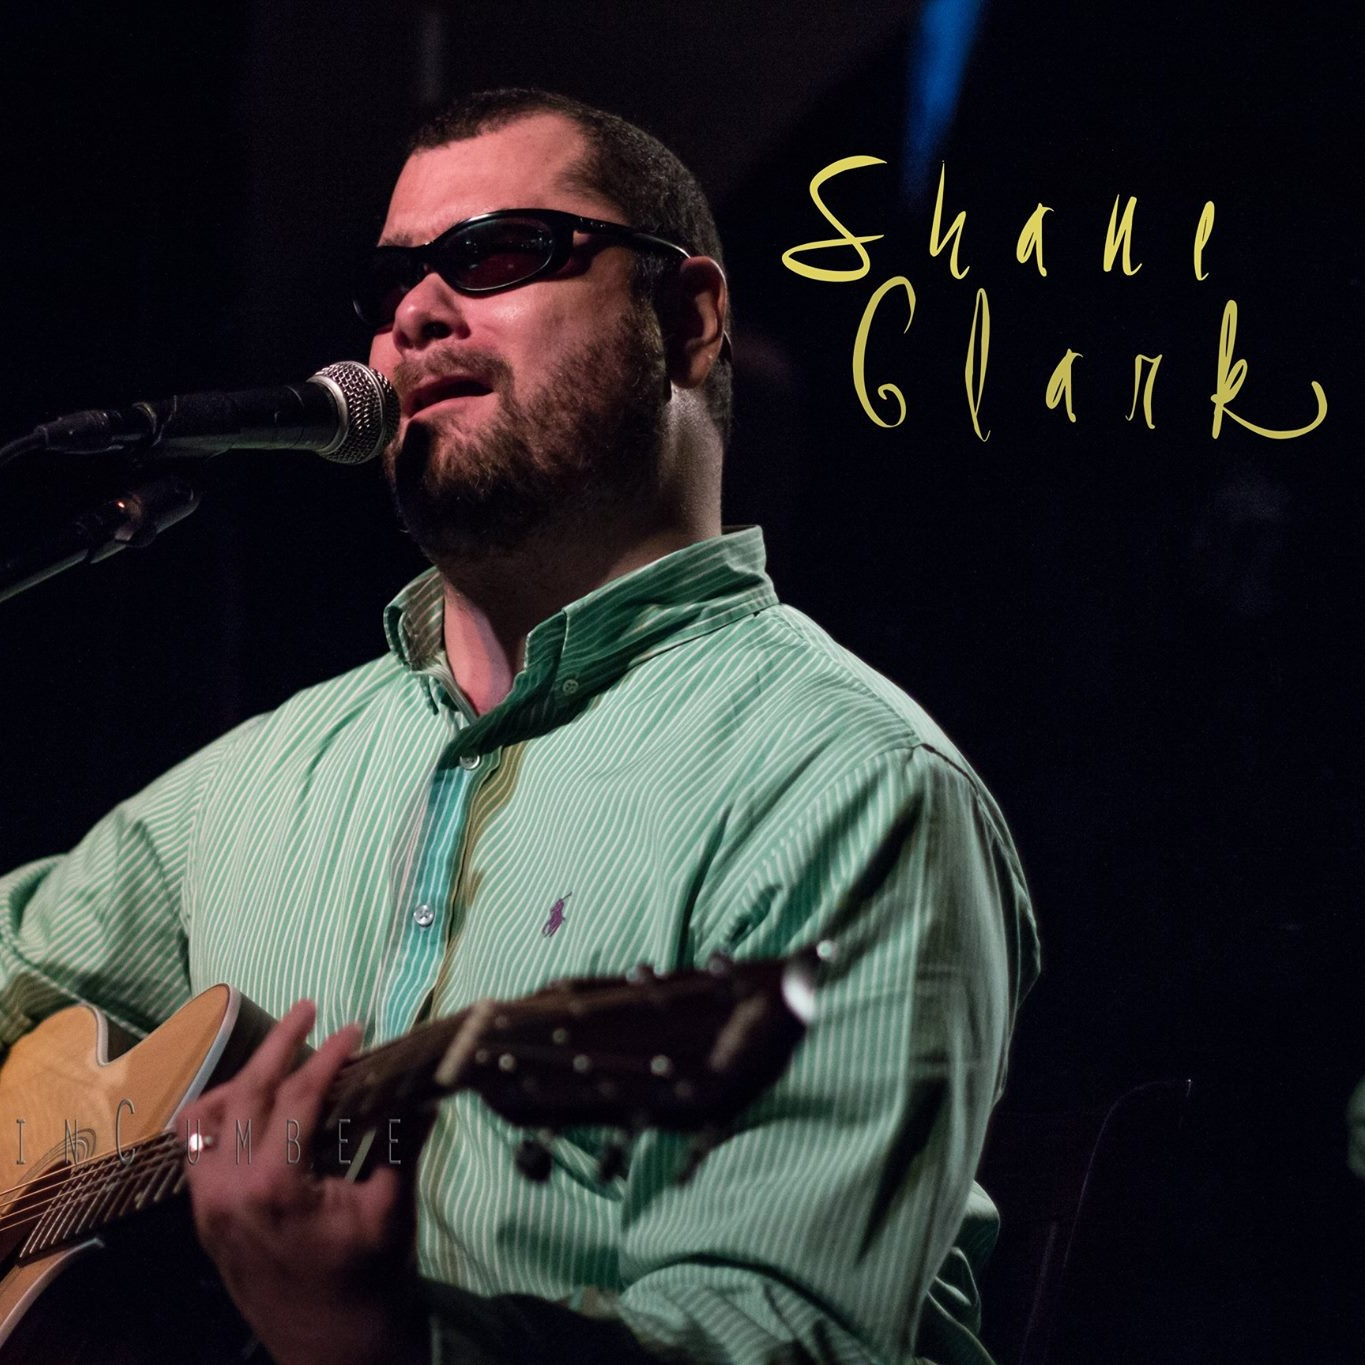 Shane Clark   Solo Acoustic Guitarist, Vocalist  Variety